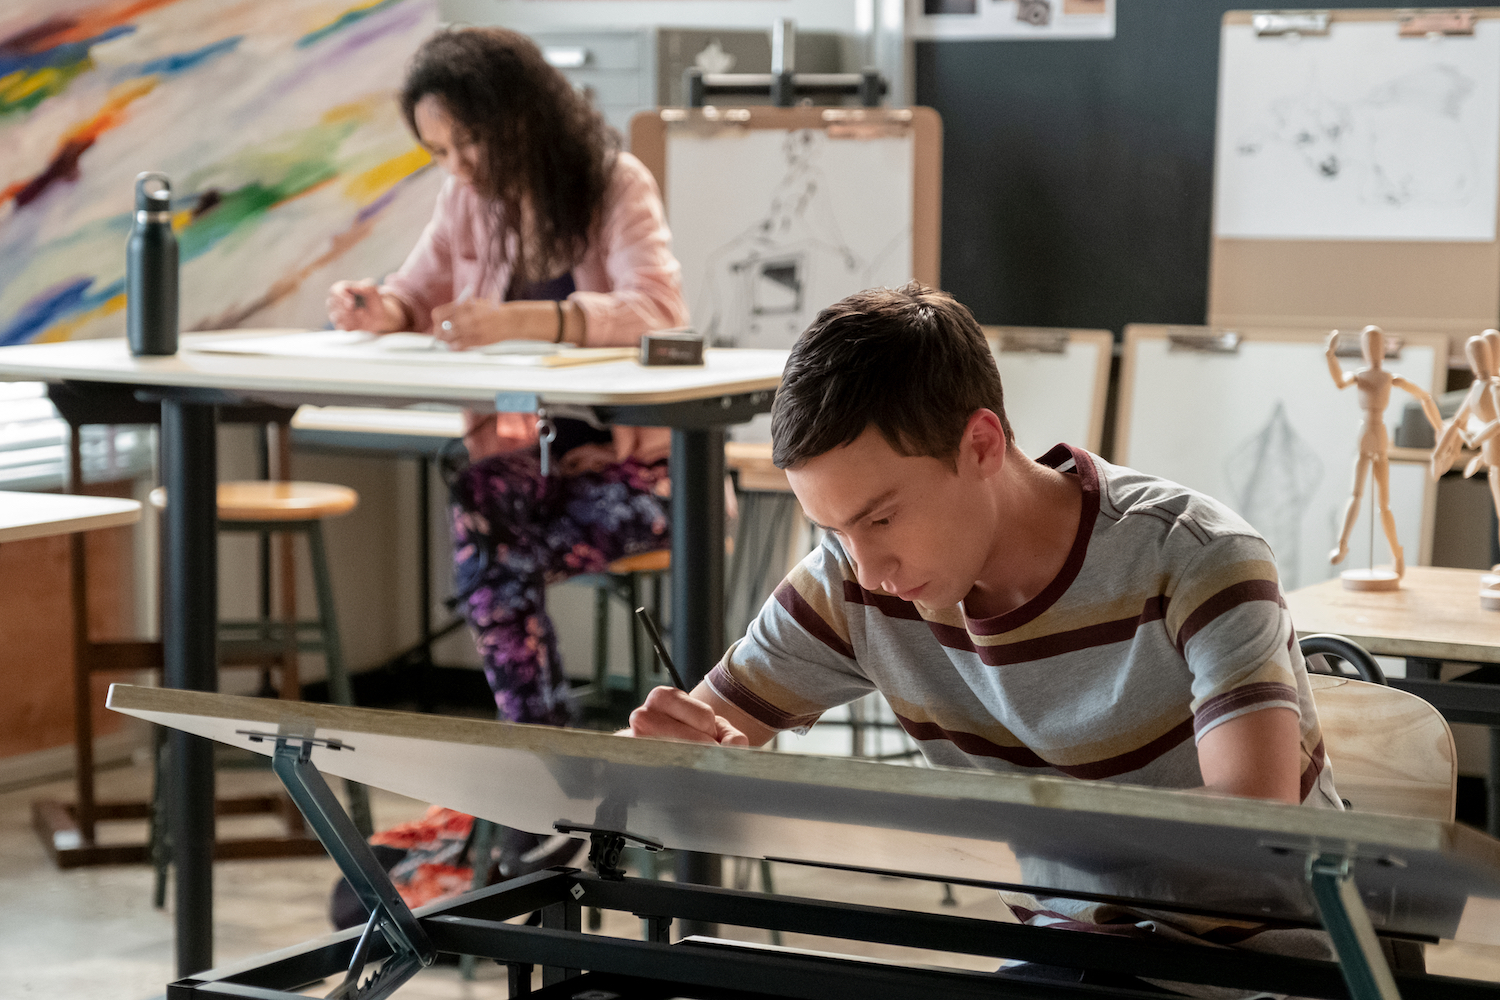 Art helps Sam (Keir Gilchrist), who has autism, express himself. (Beth Dubber / Netflix/TNS)